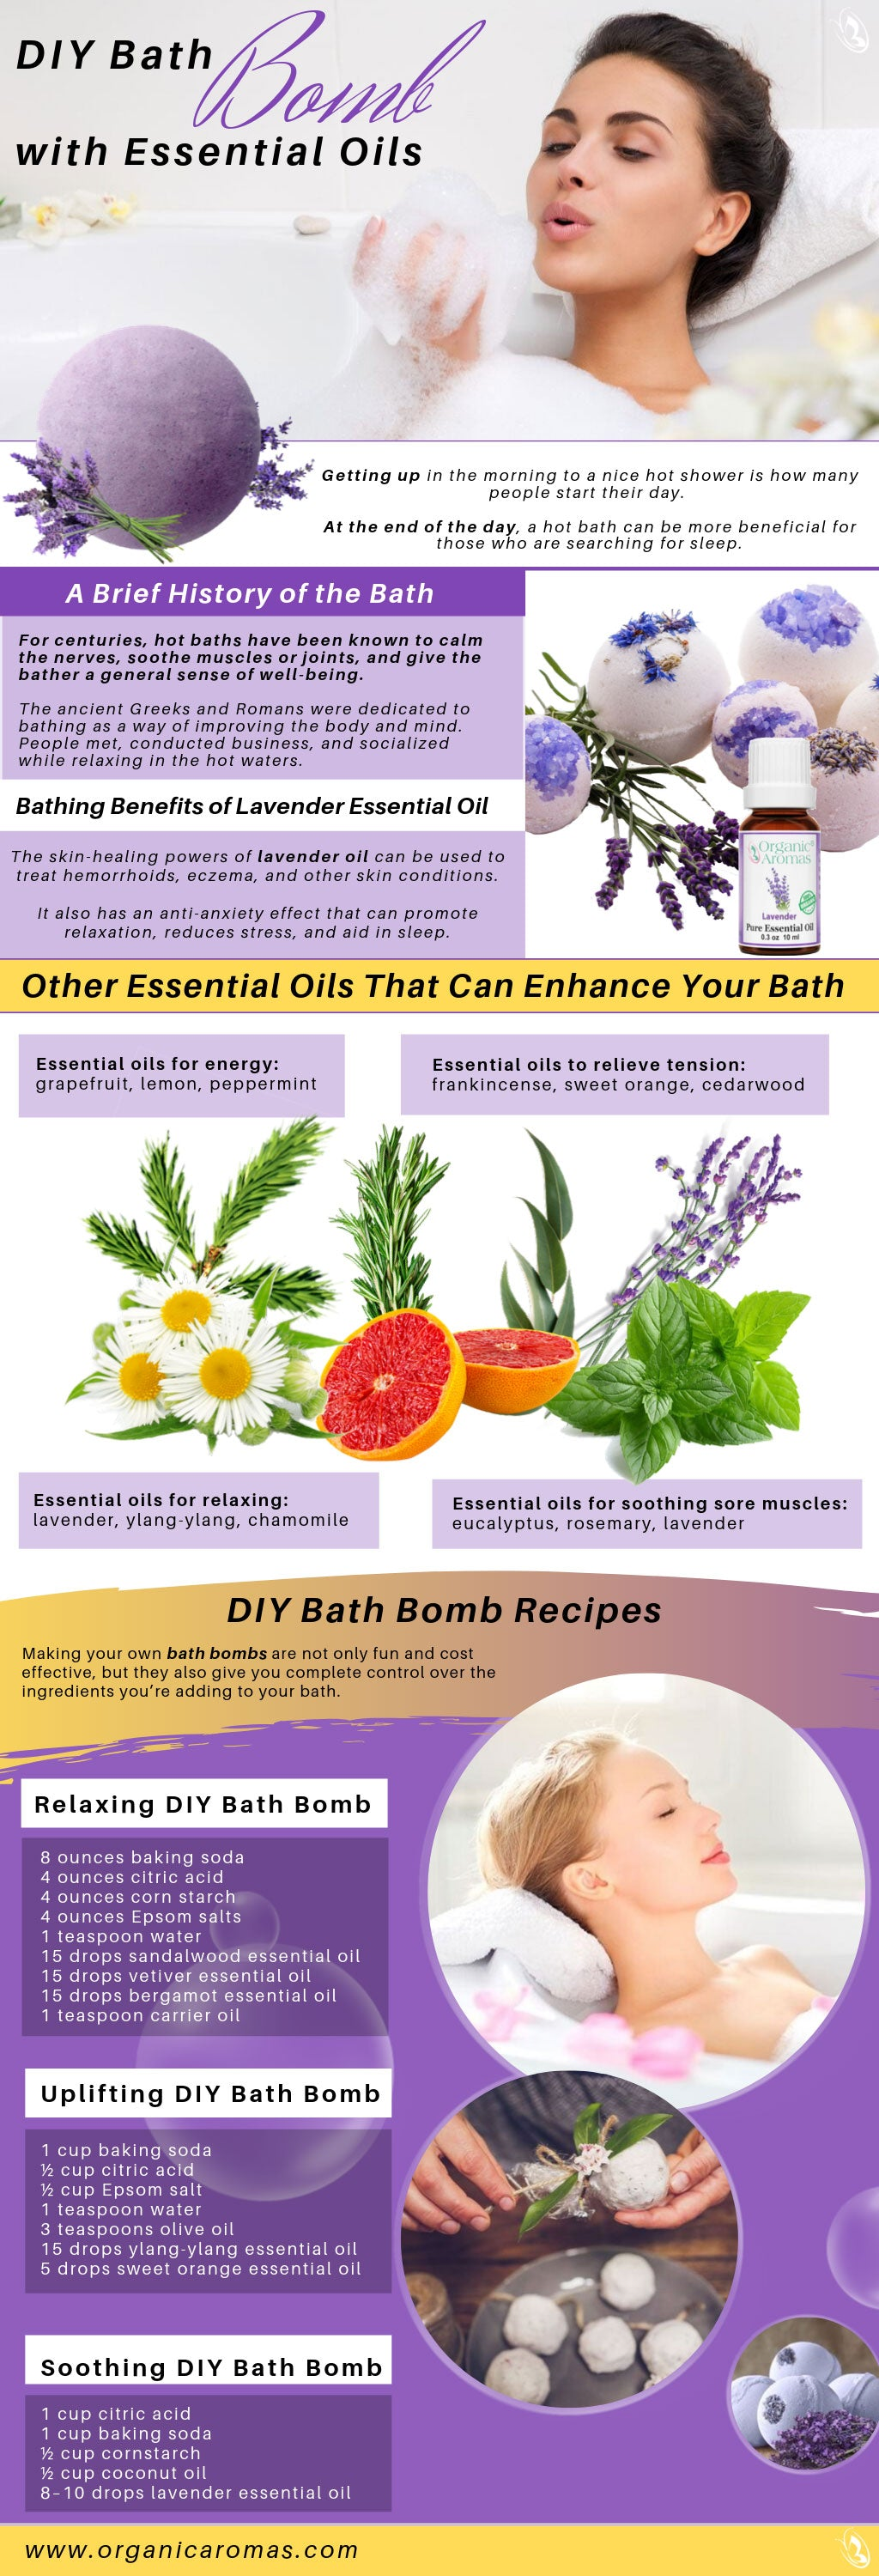 DIY Bath Bomb With Essential Oils